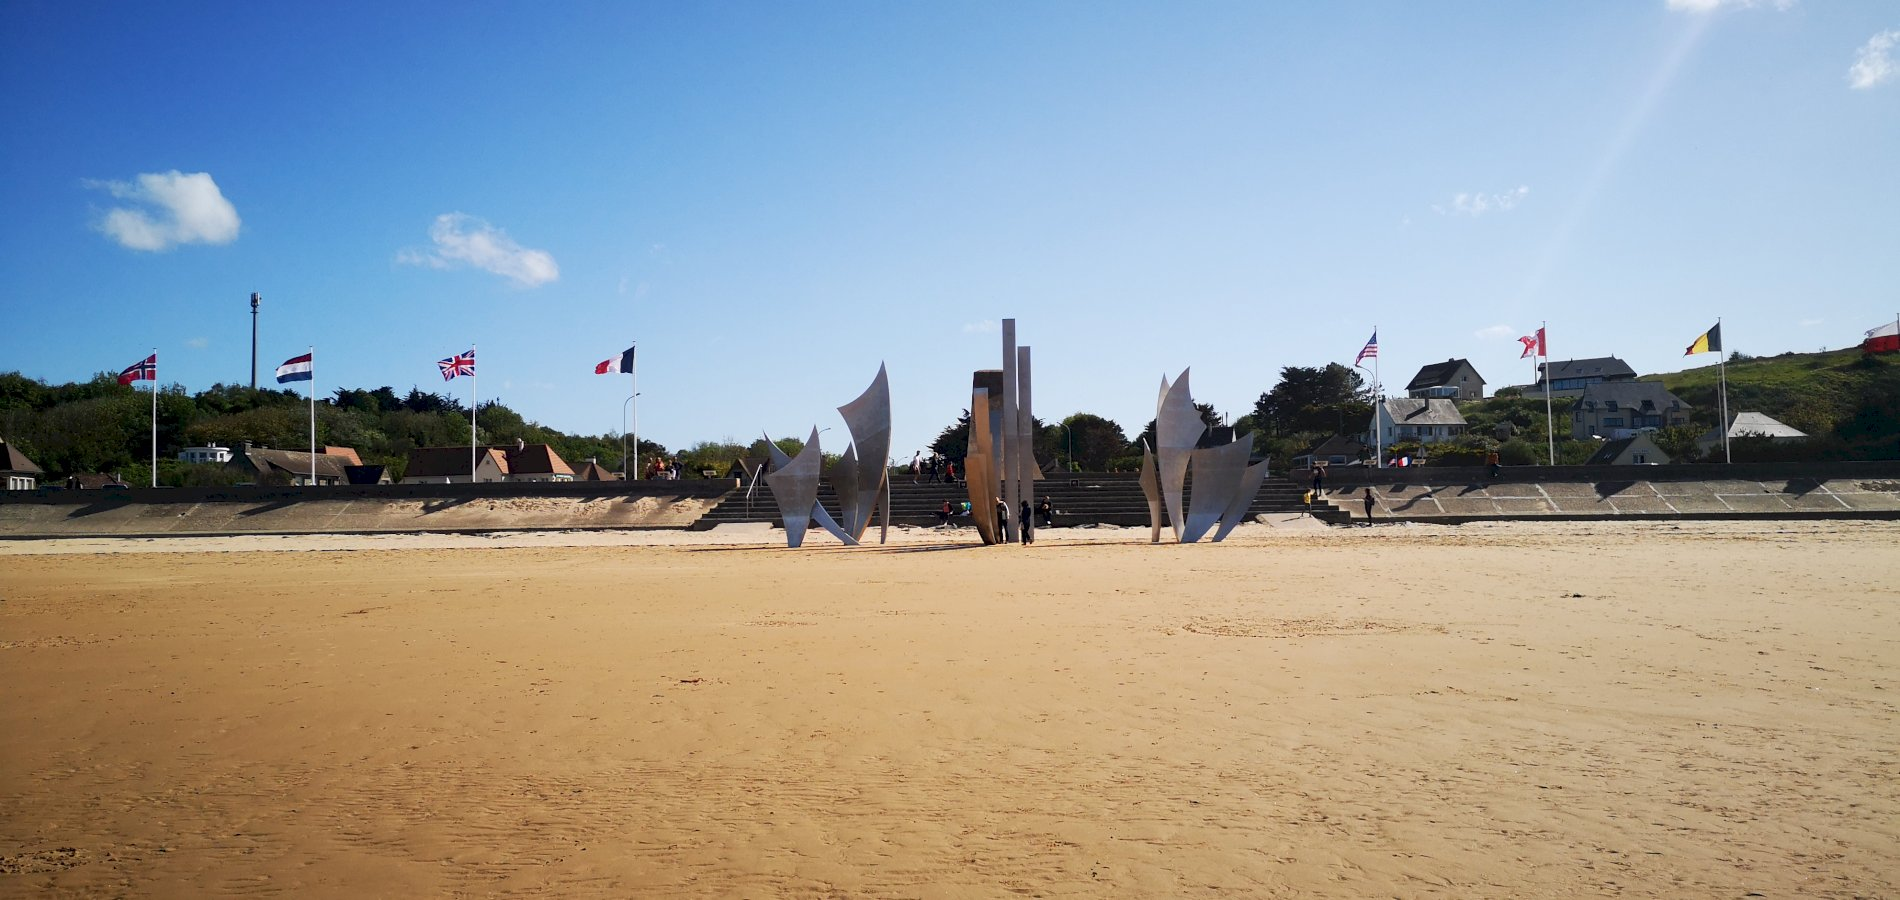 Ophorus Tours - Omaha Beach & Normandy D-Day Sites Private Half Day Trip From Caen